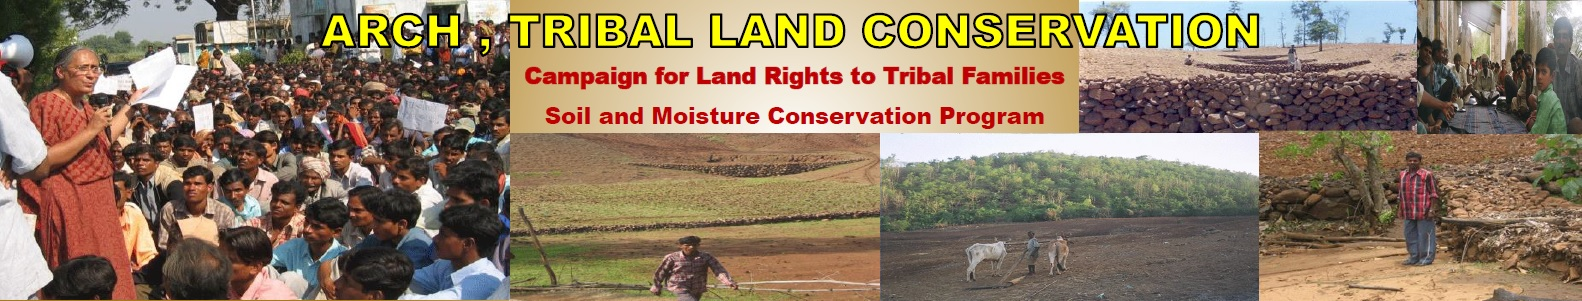 ARCH TRIBAL LAND AND FOREST CONSERVATION